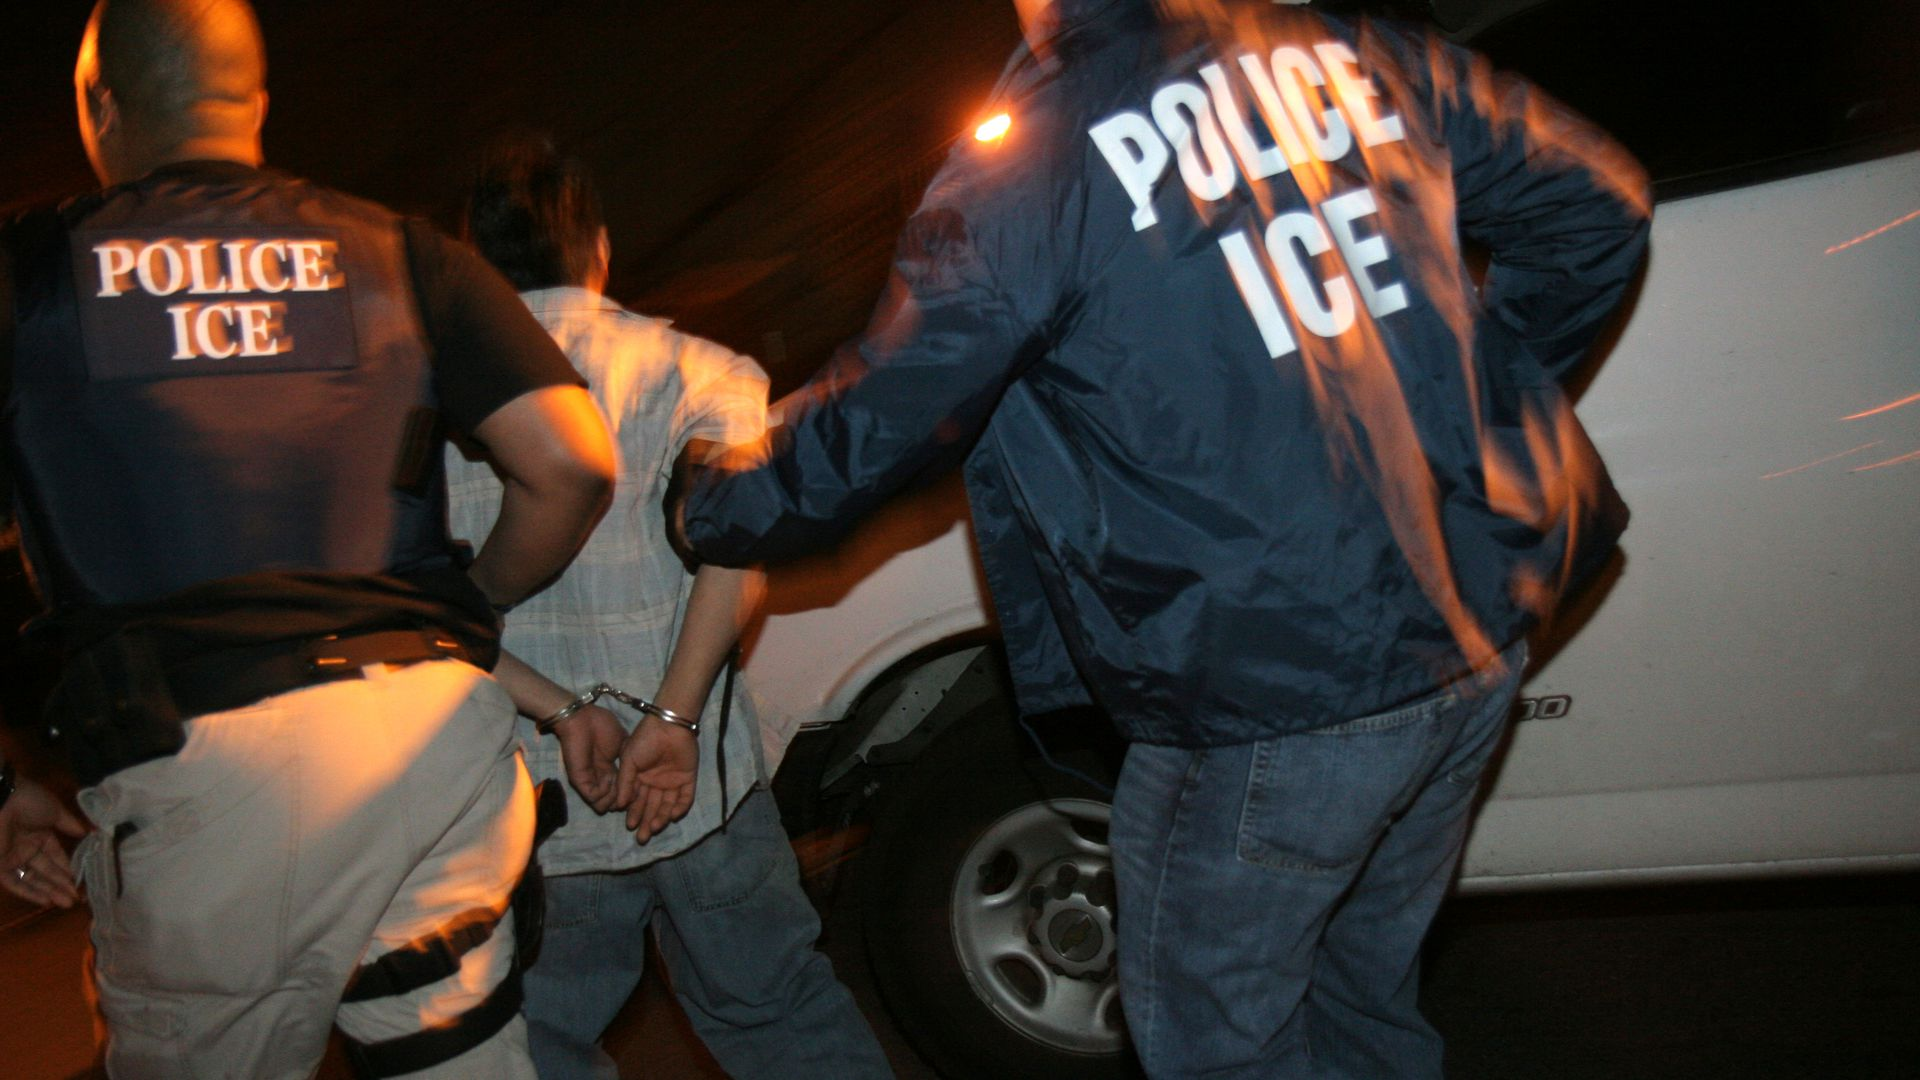 ICE agents detain someone.